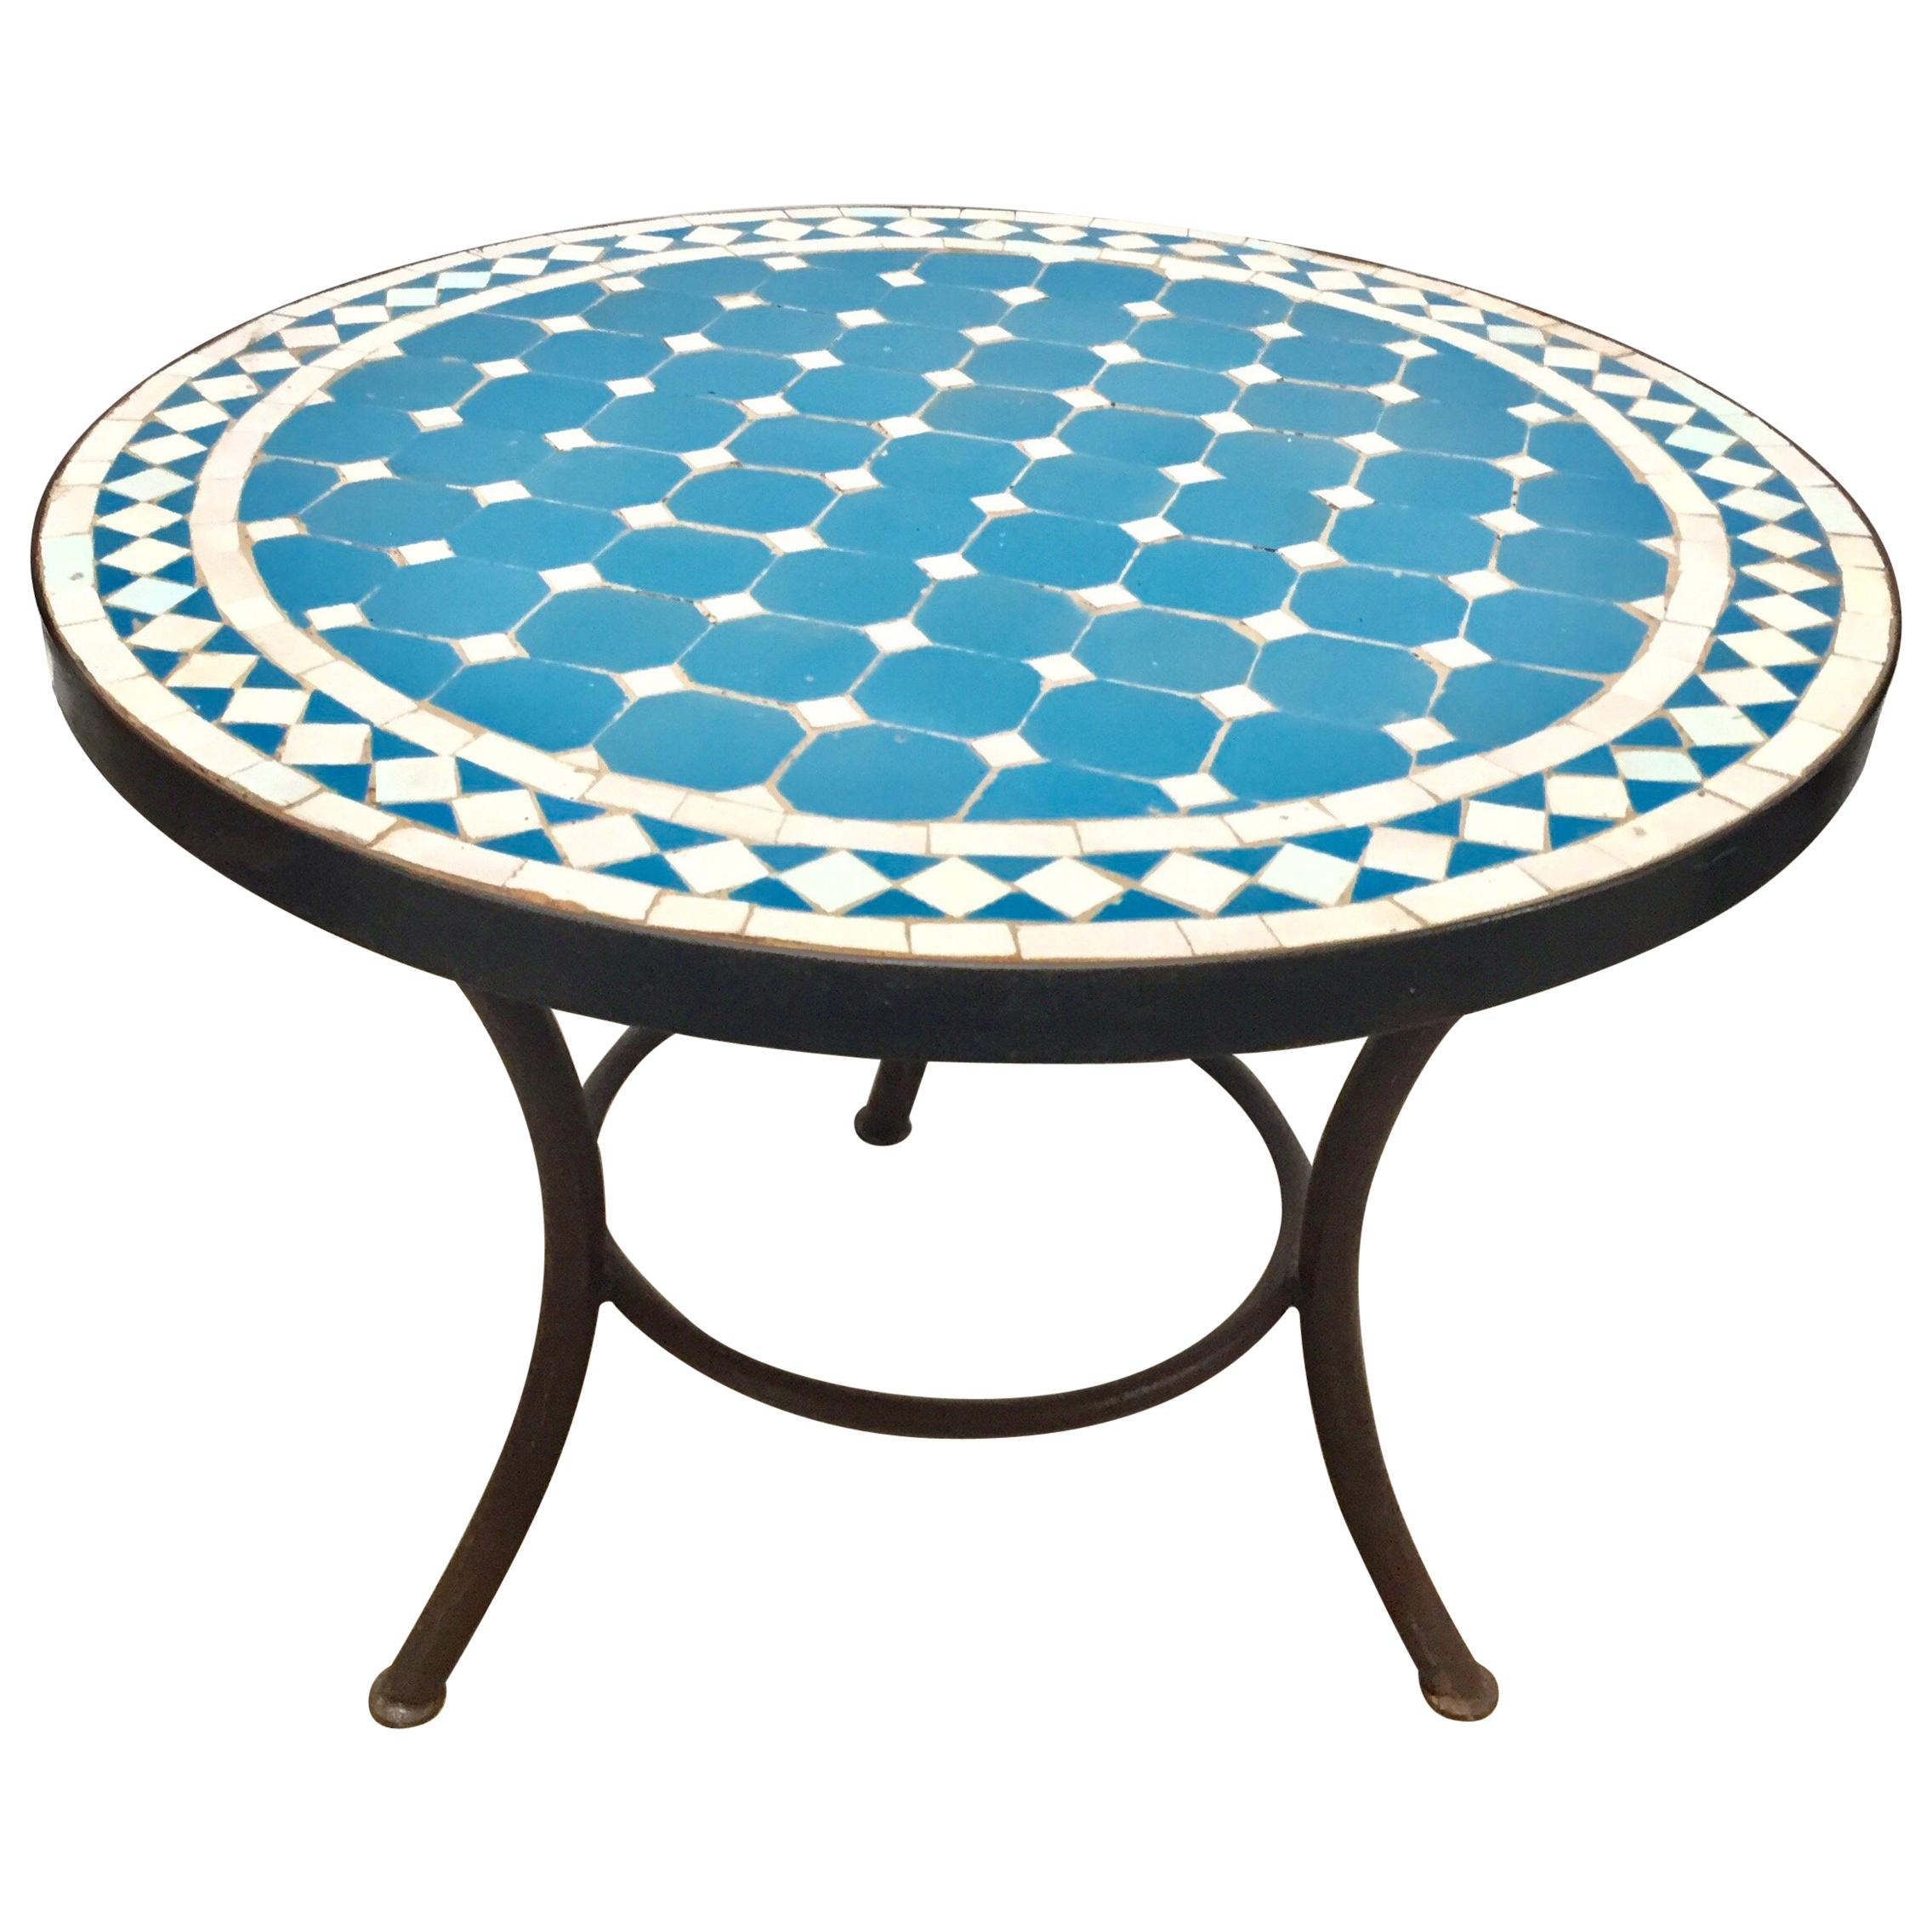 azur outdoor side table midnight blue frederic gaunet and master tolix for hobby lobby patio furniture gray wash coffee chairs with umbrella end clearance turquoise best drum